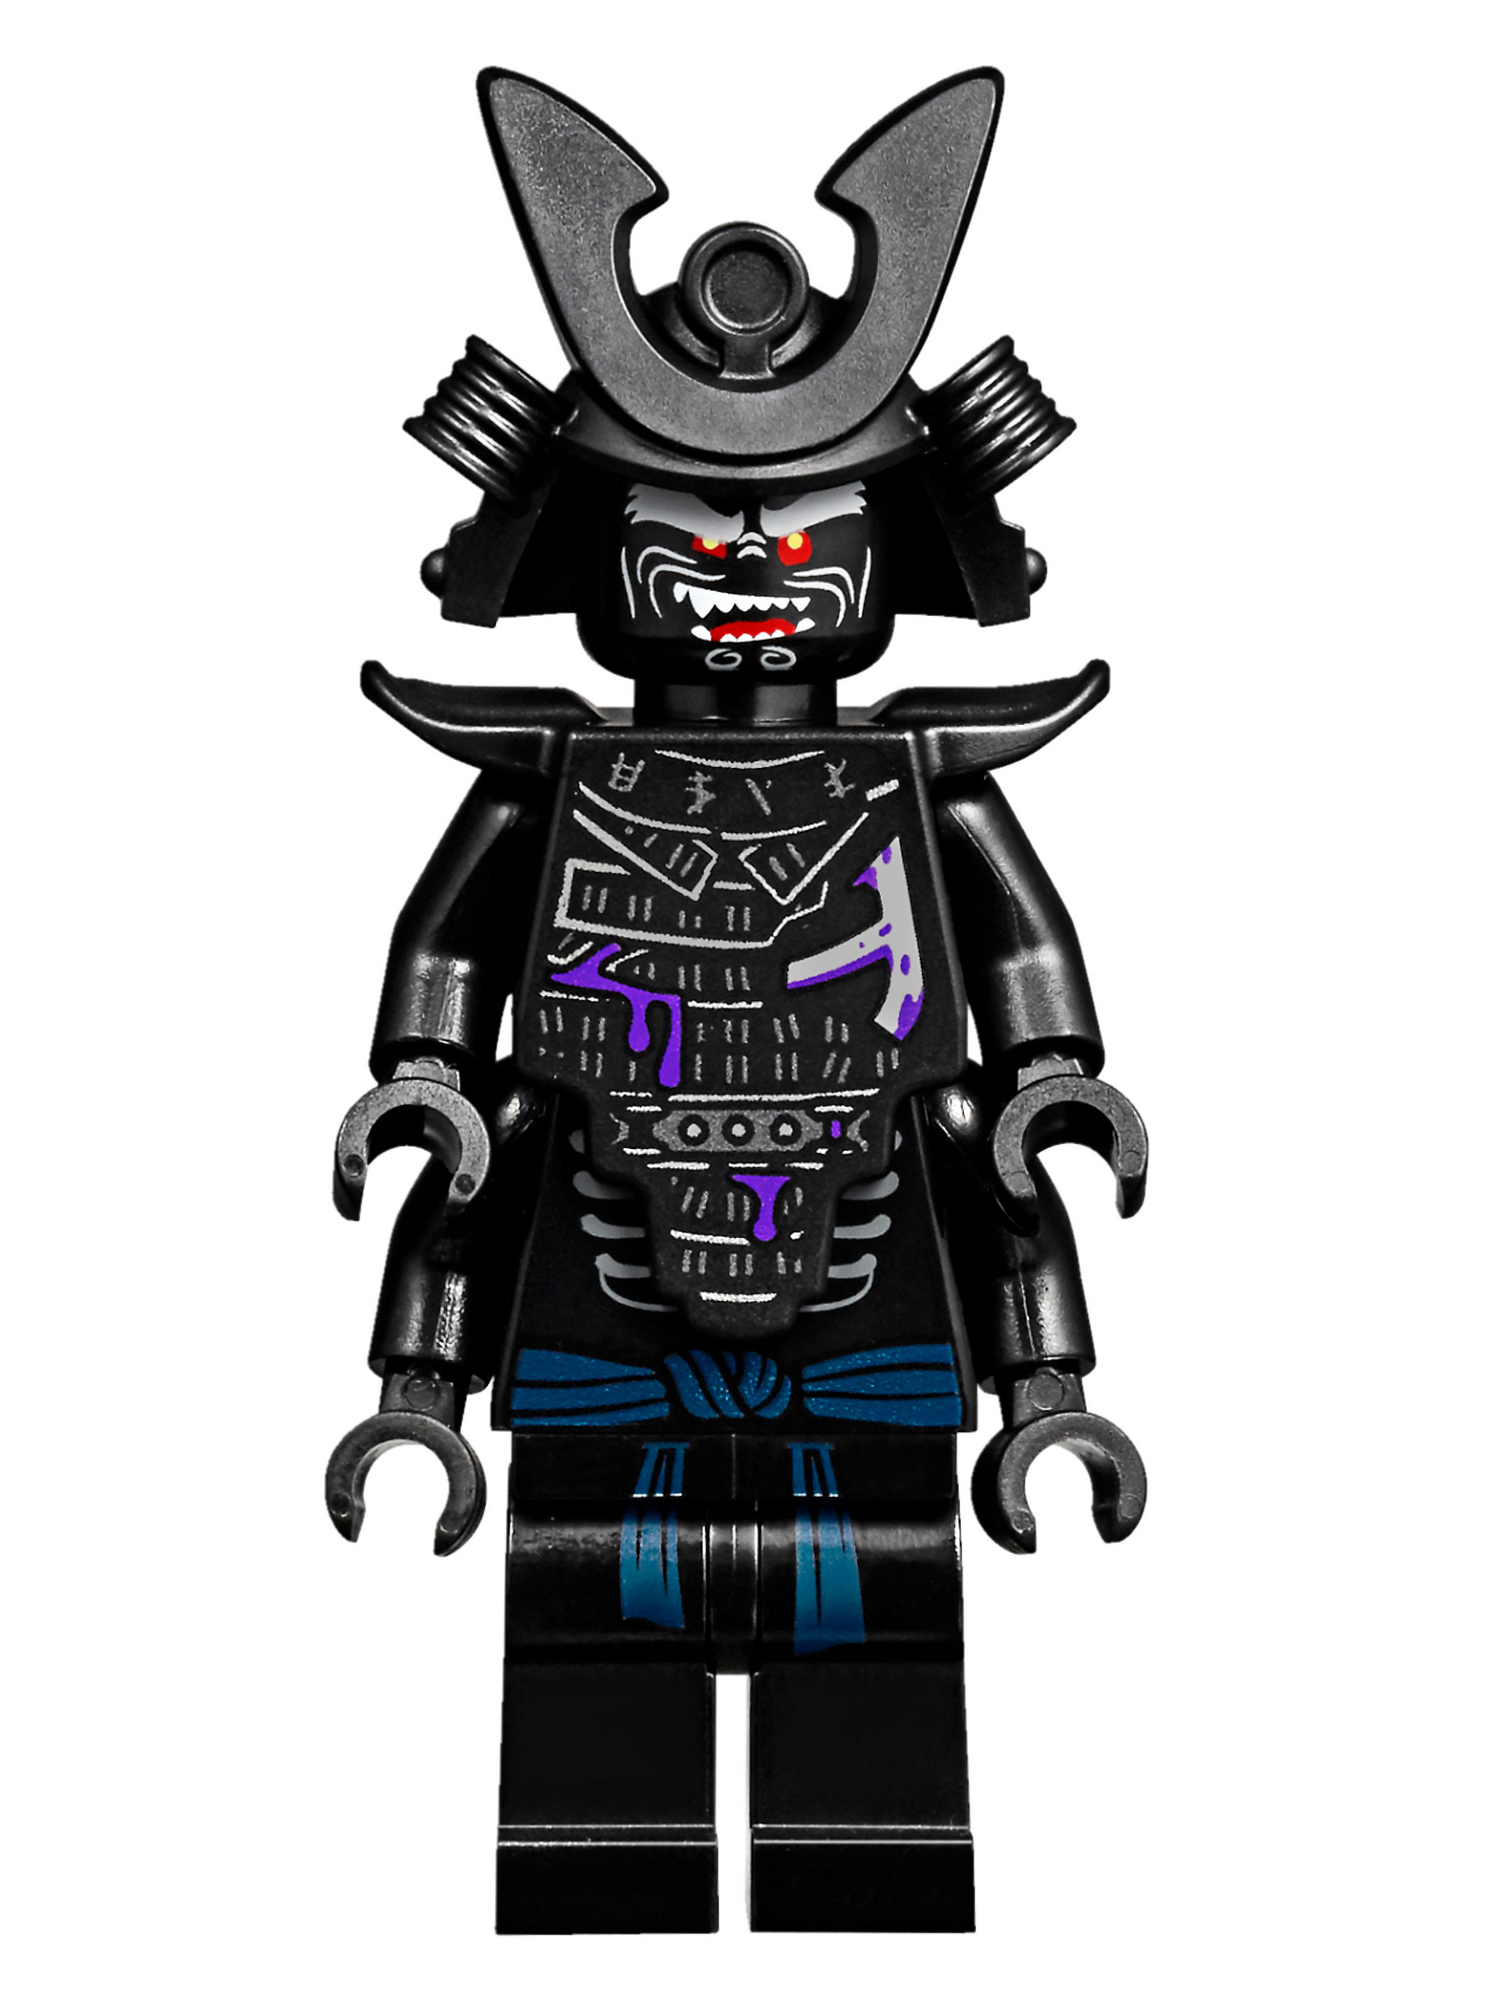 Garmadon | Brickipedia | FANDOM powered by Wikia